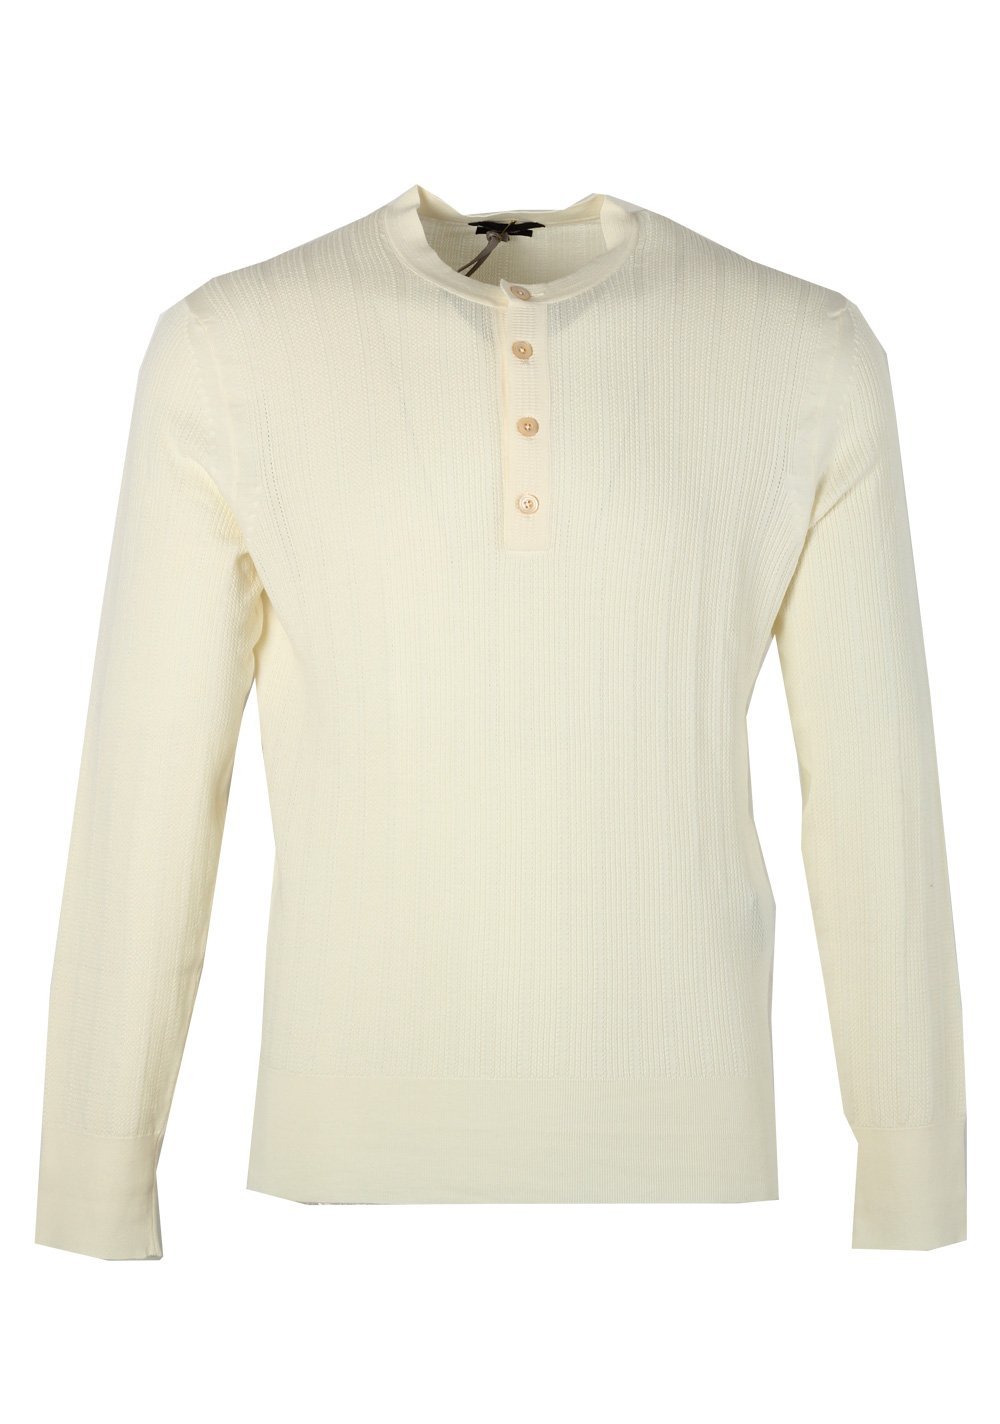 a1e453194439 Costume Limit CL - Tom Ford Off White Long Sleeve Henley Sweater Size 48    38R U.S. in Cashmere Blend